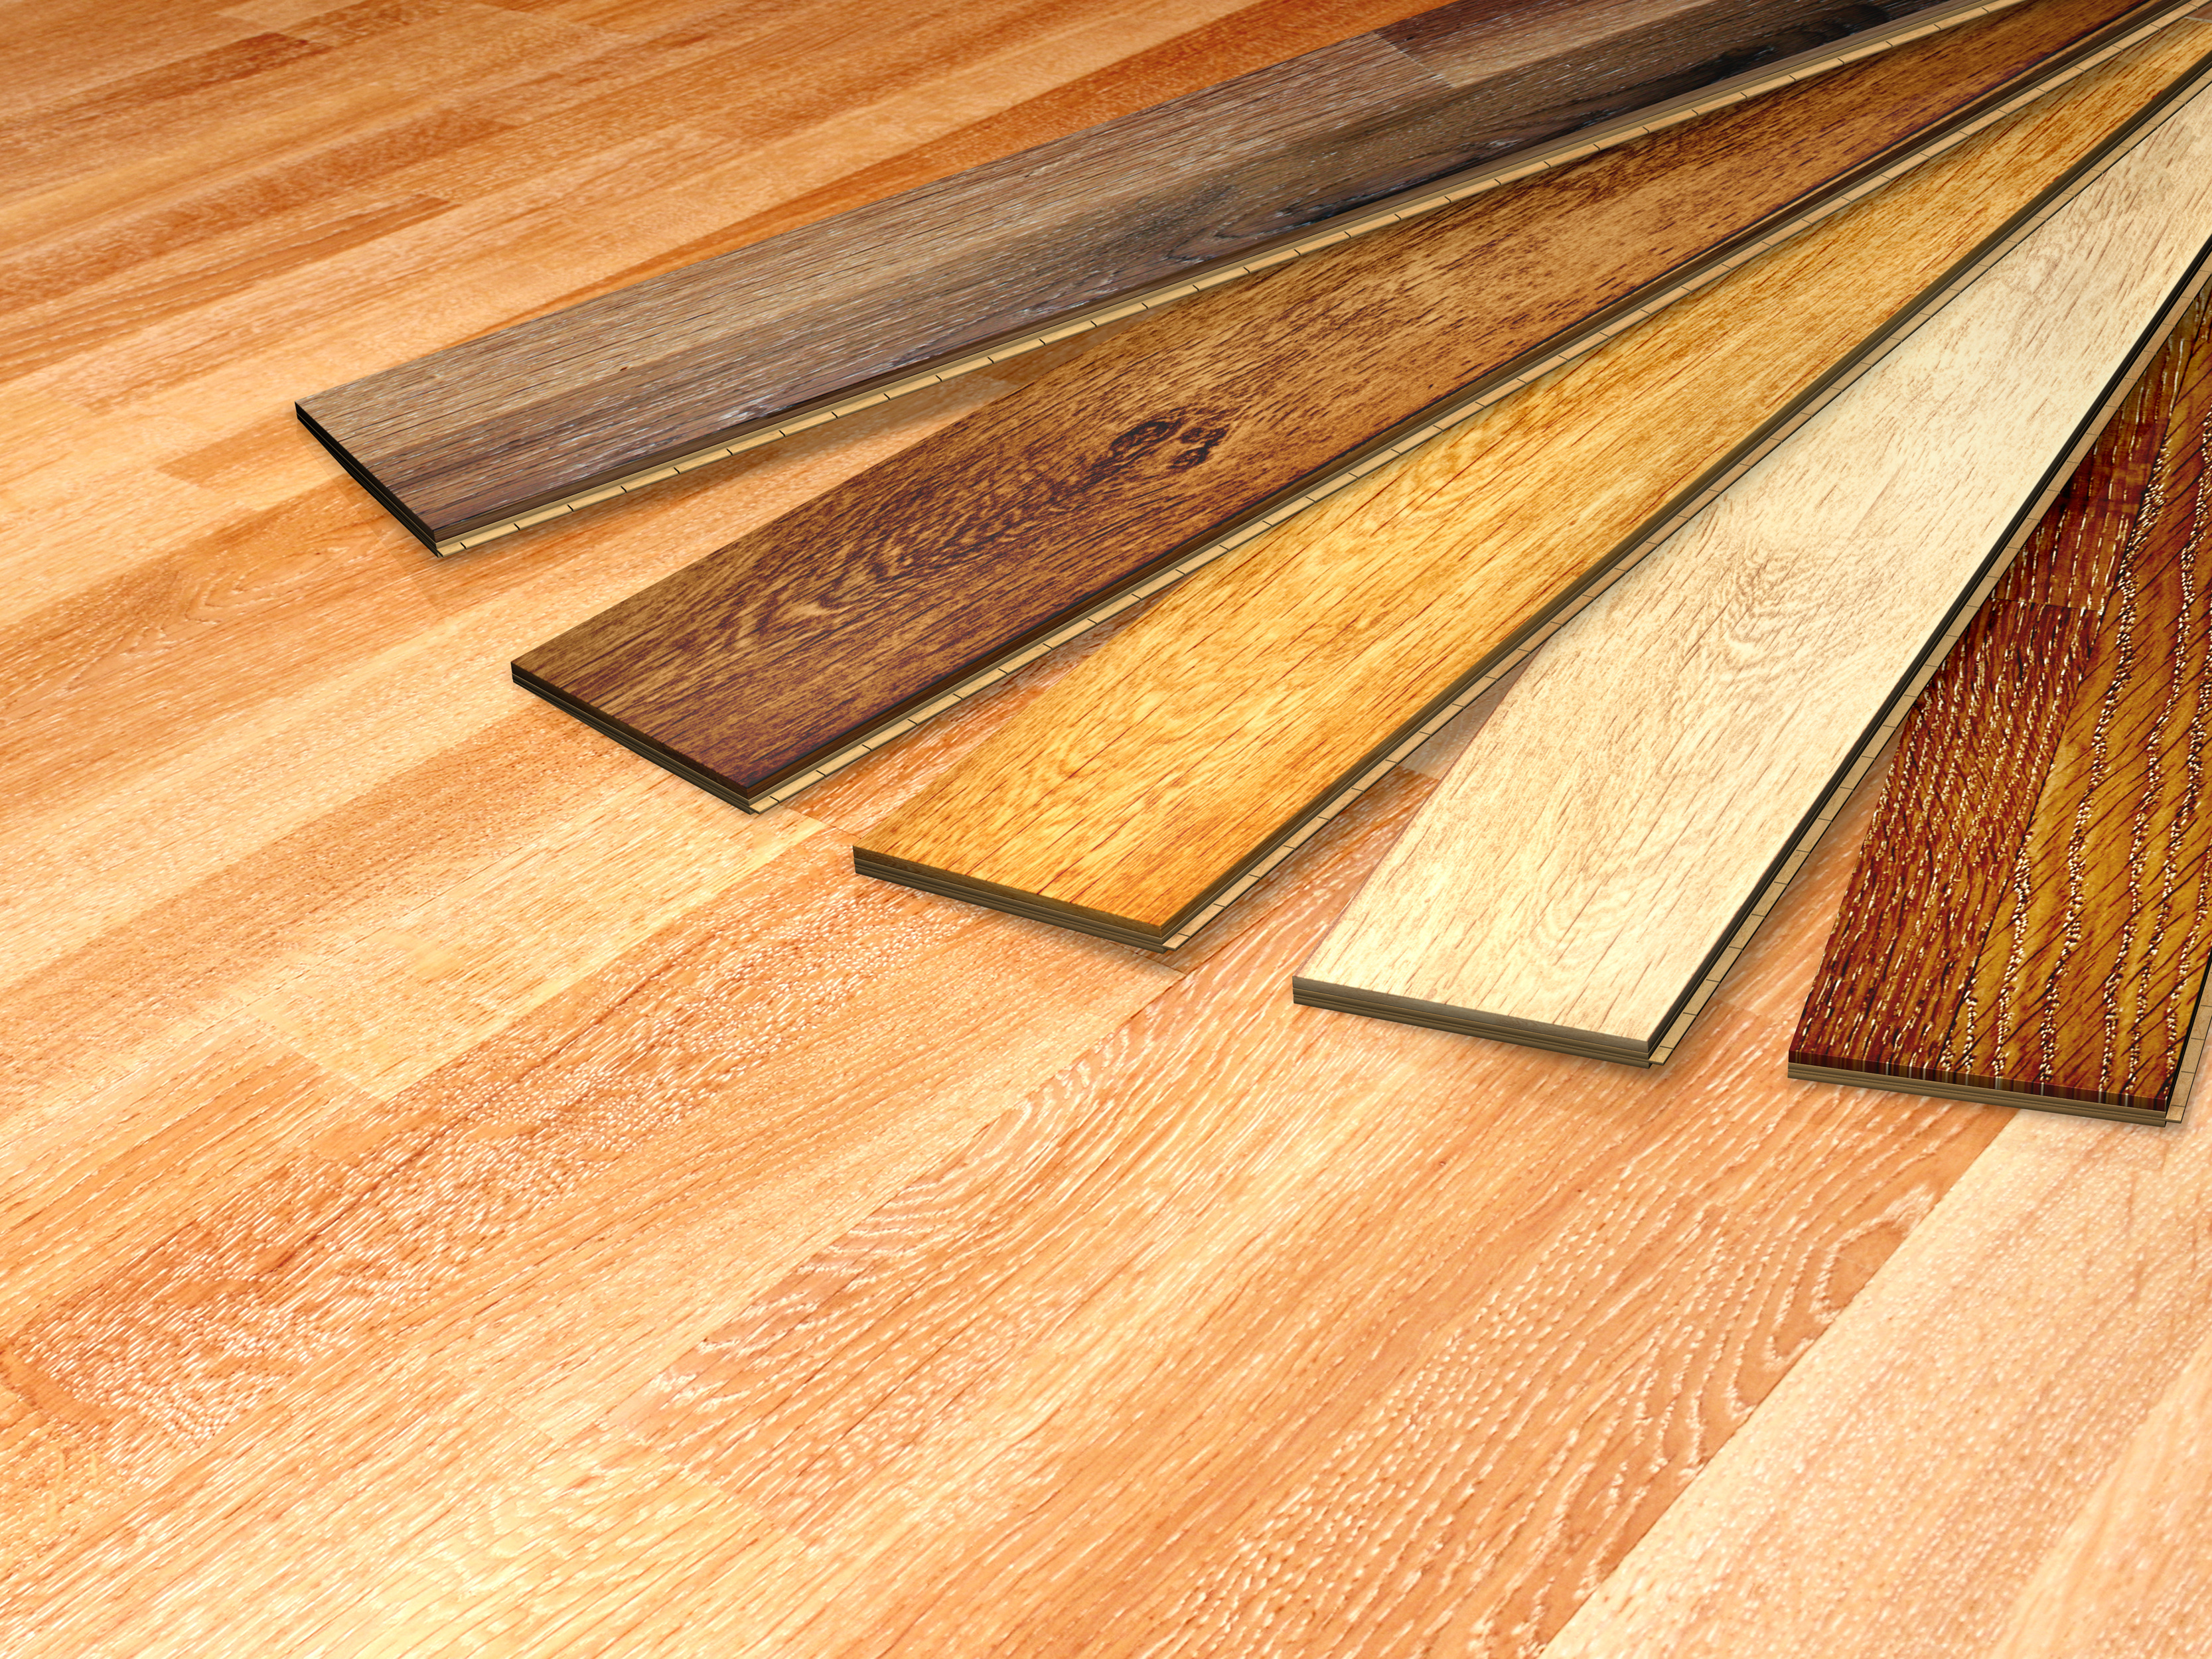 The Benefits of Engineered Wood Flooring Oak - Why This is a Good Choice For Your Next Room Design